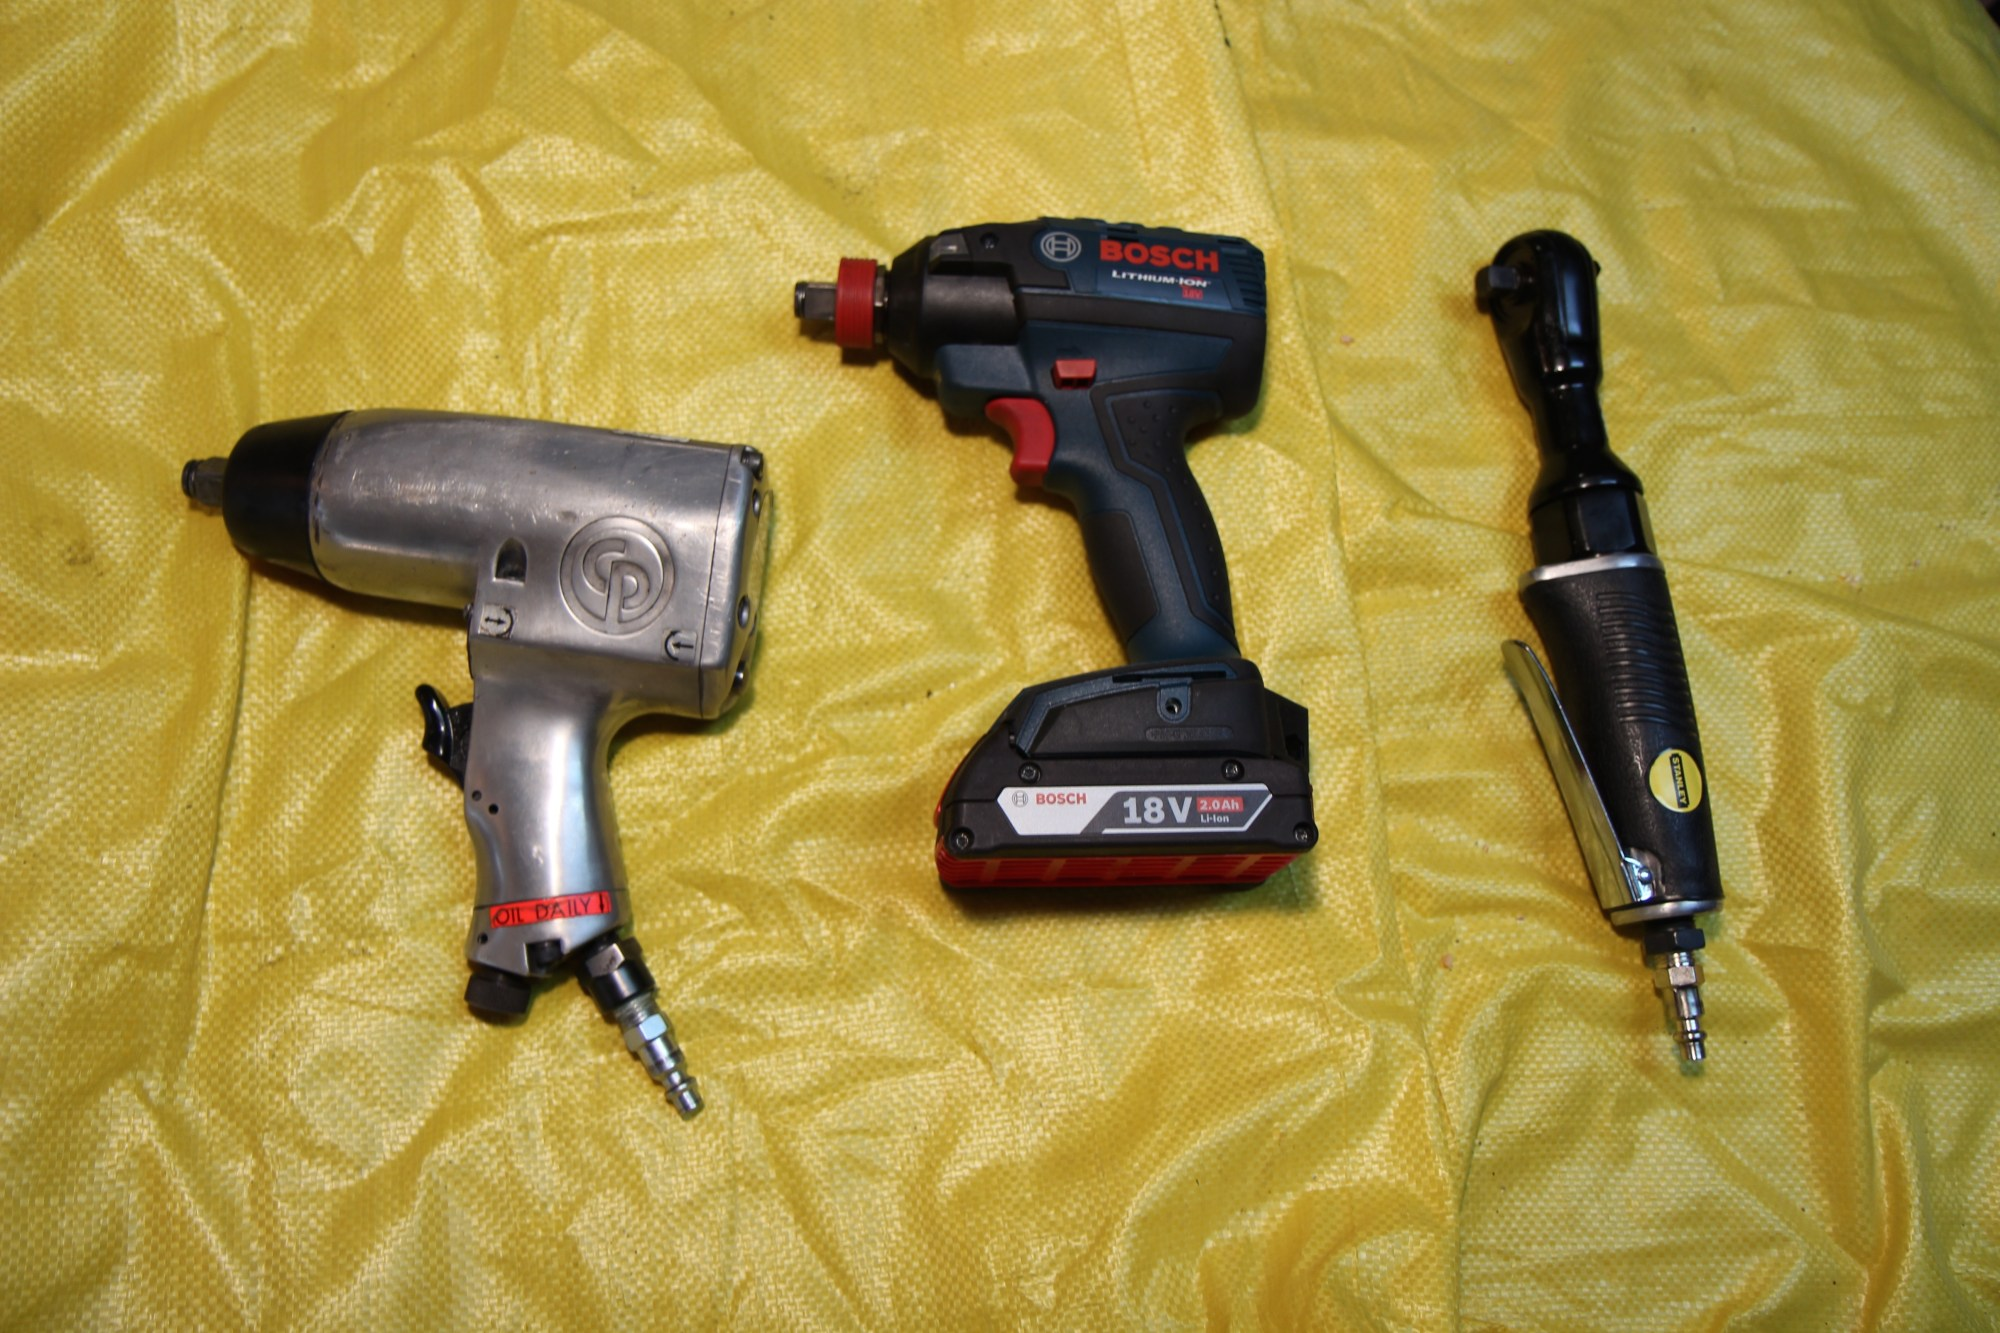 hight resolution of a cordless impact wrench like the one in the middle is a very useful tool i would highly recommend for anyone doing much work on cars